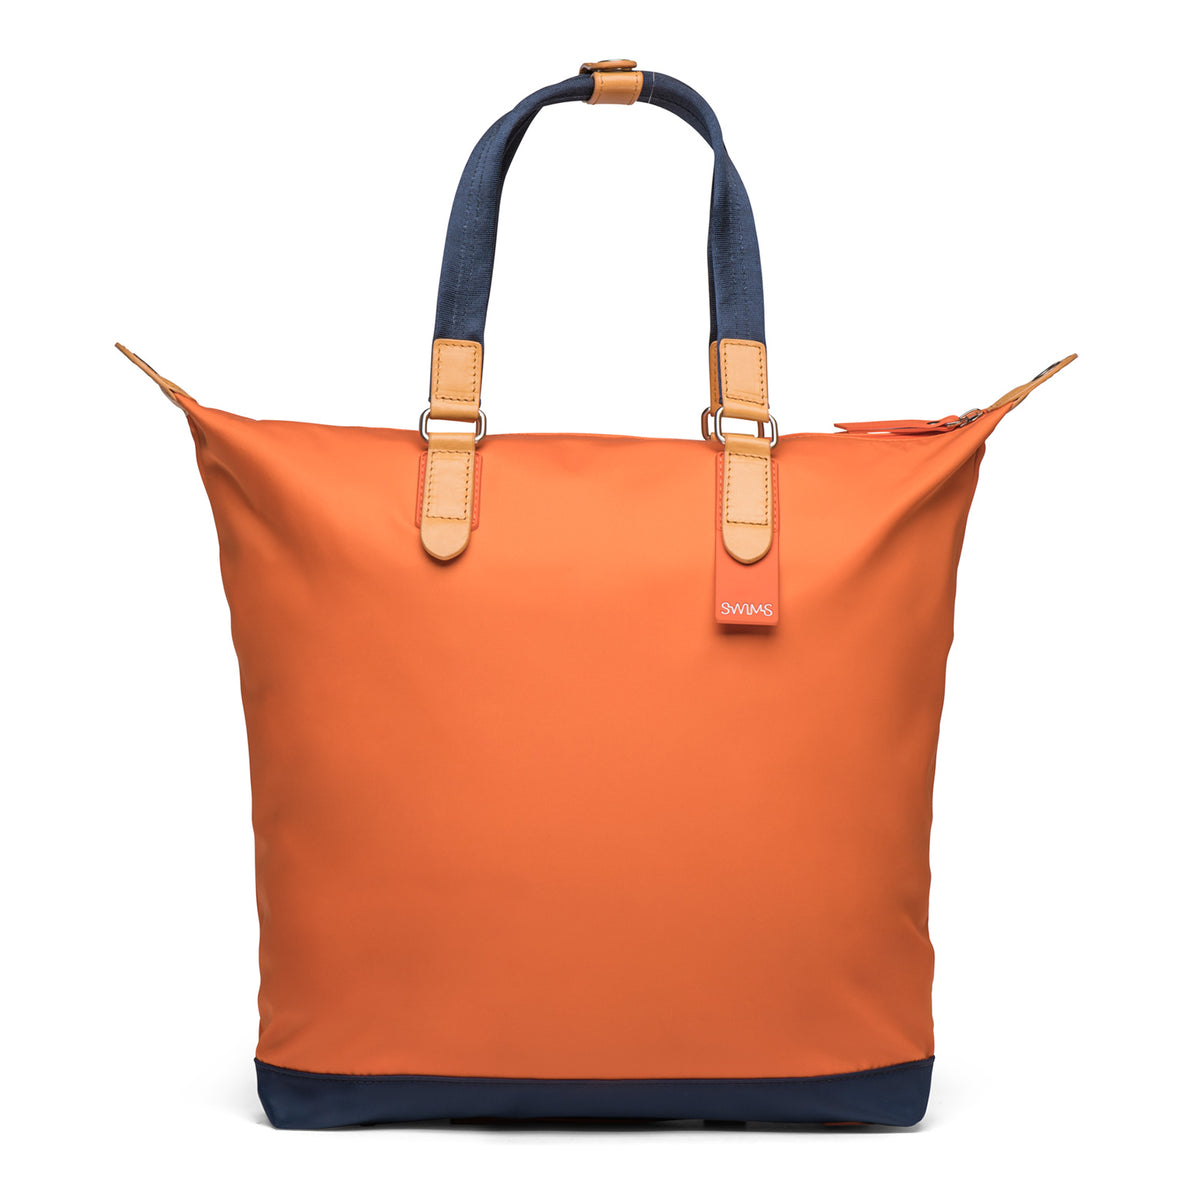 Tote - background::white,variant::Swims Orange